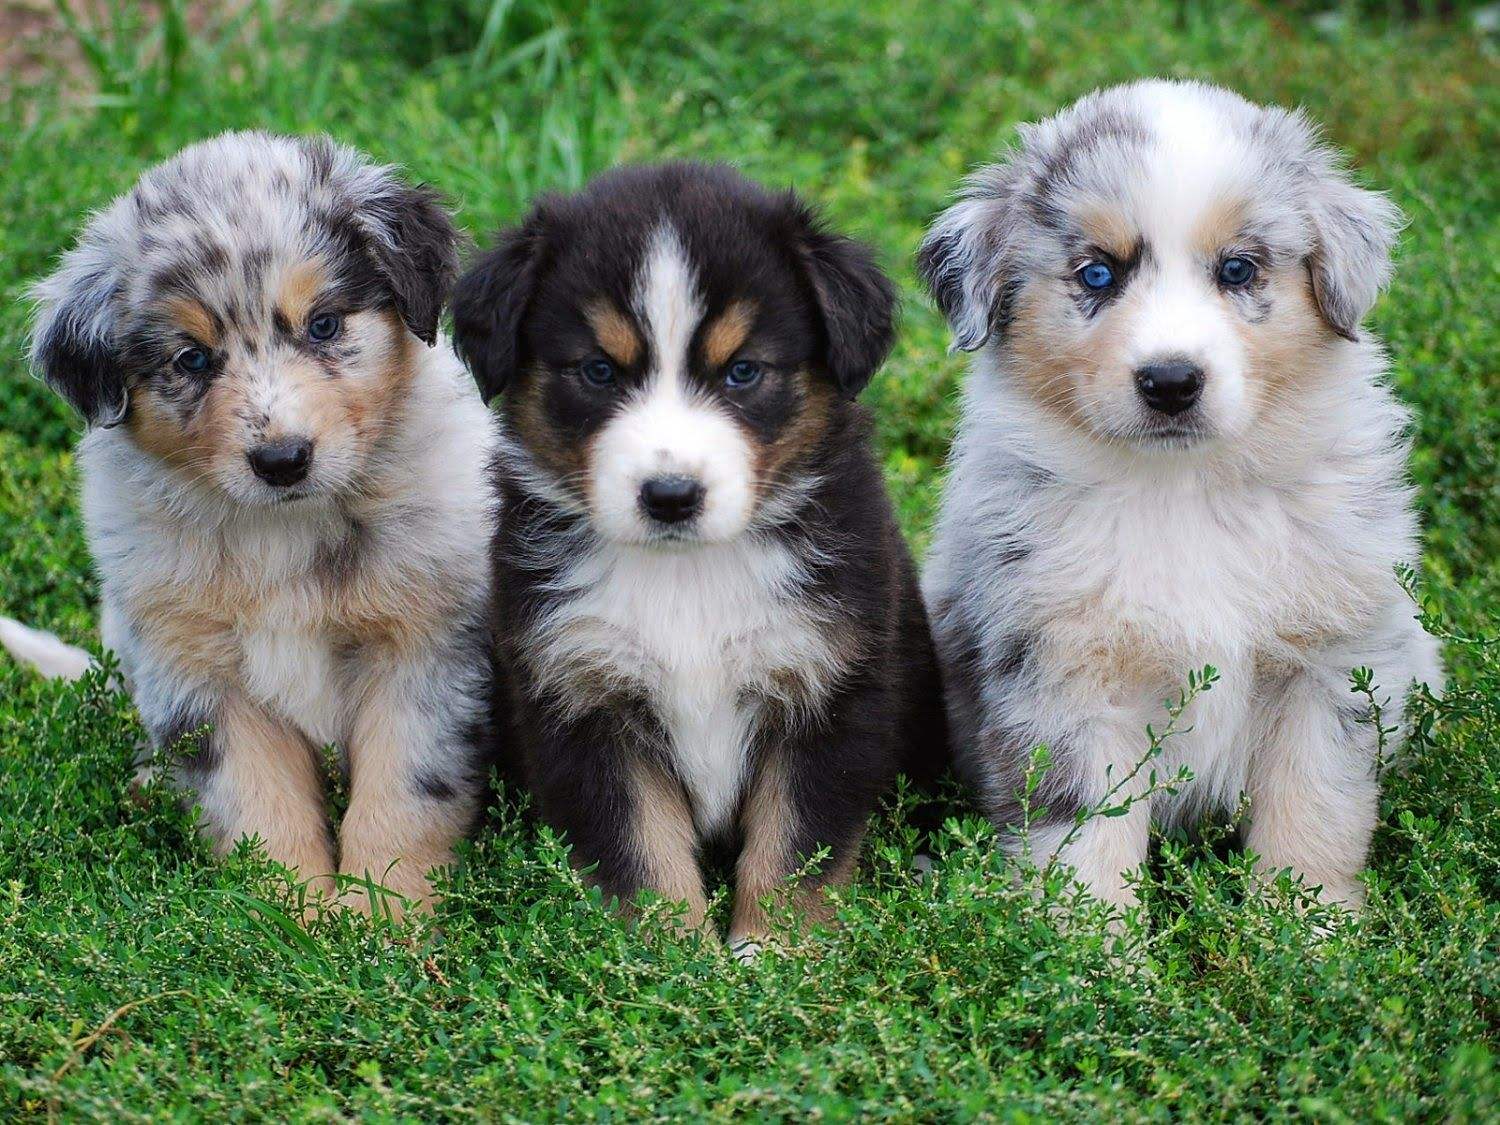 Rules Of The Jungle Australian Shepherd Puppies Australian Shepherd Dogs Australian Shepherd Puppies Cute Dogs And Puppies